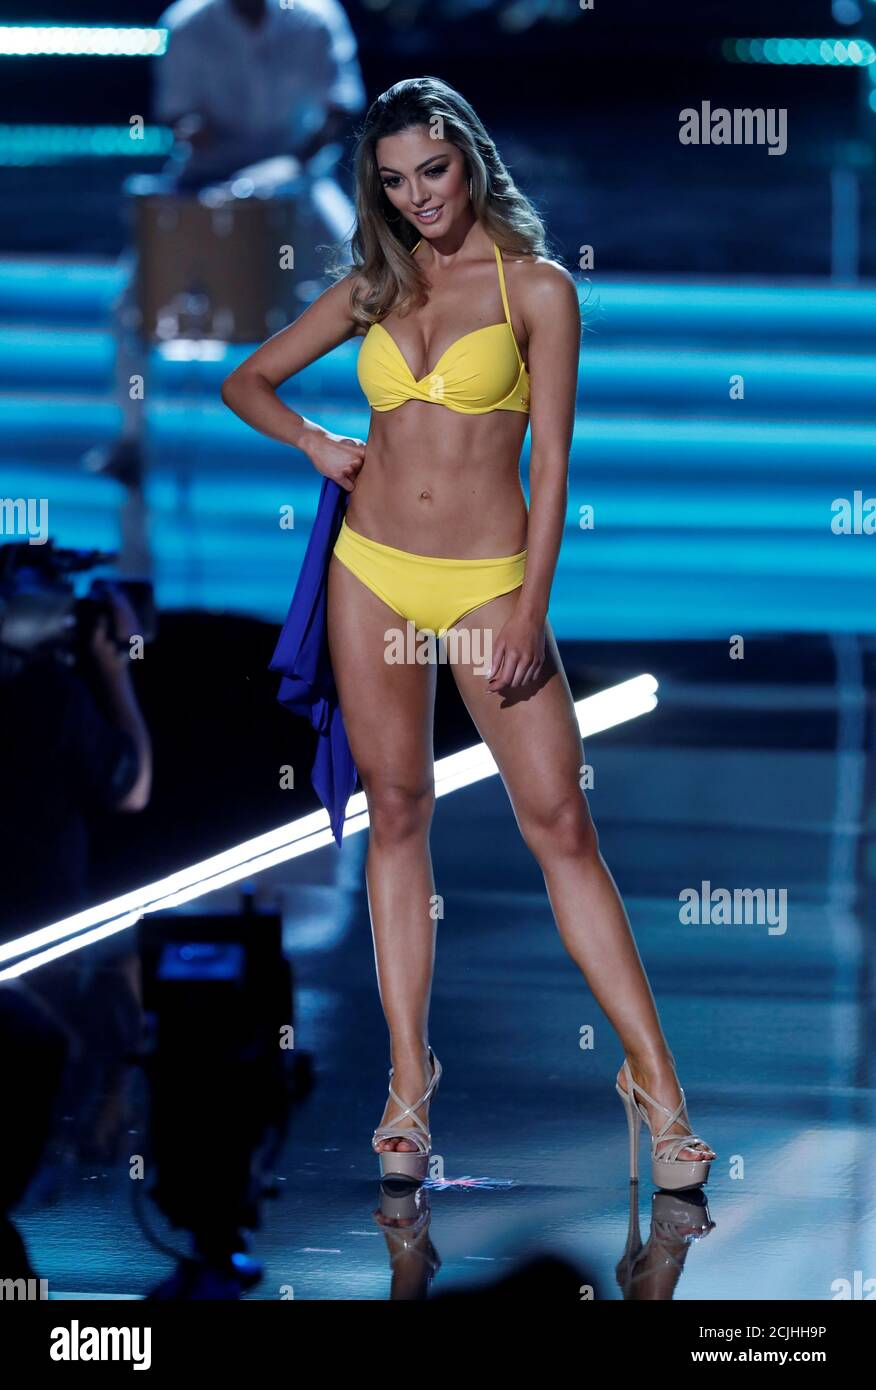 Demi-leigh Nel-peters : demi-leigh, nel-peters, South, Africa, Demi-Leigh, Nel-Peters, Competes, During, Universe, Pageant, Planet, Hollywood, Hotel-casino, Vegas,, Nevada,, November, 2017., REUTERS/Steve, Marcus, Stock, Photo, Alamy